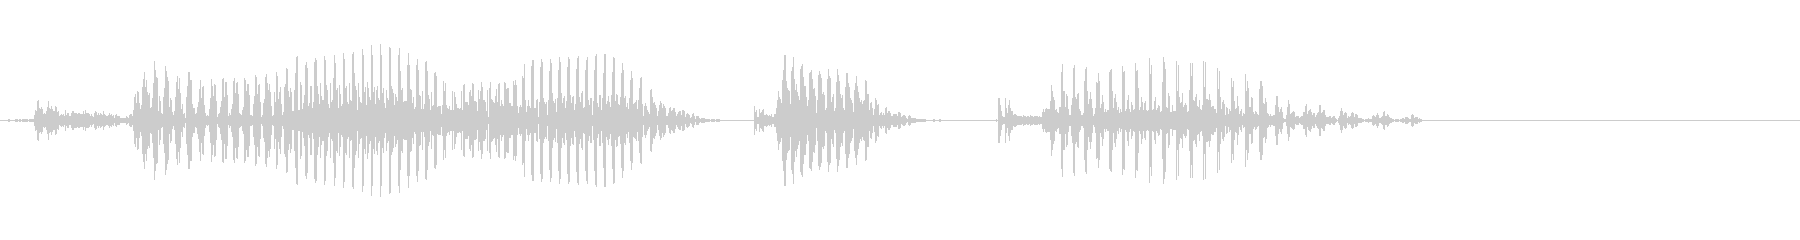 """Kumamoto Prefecture""'s unreproduced waveform"